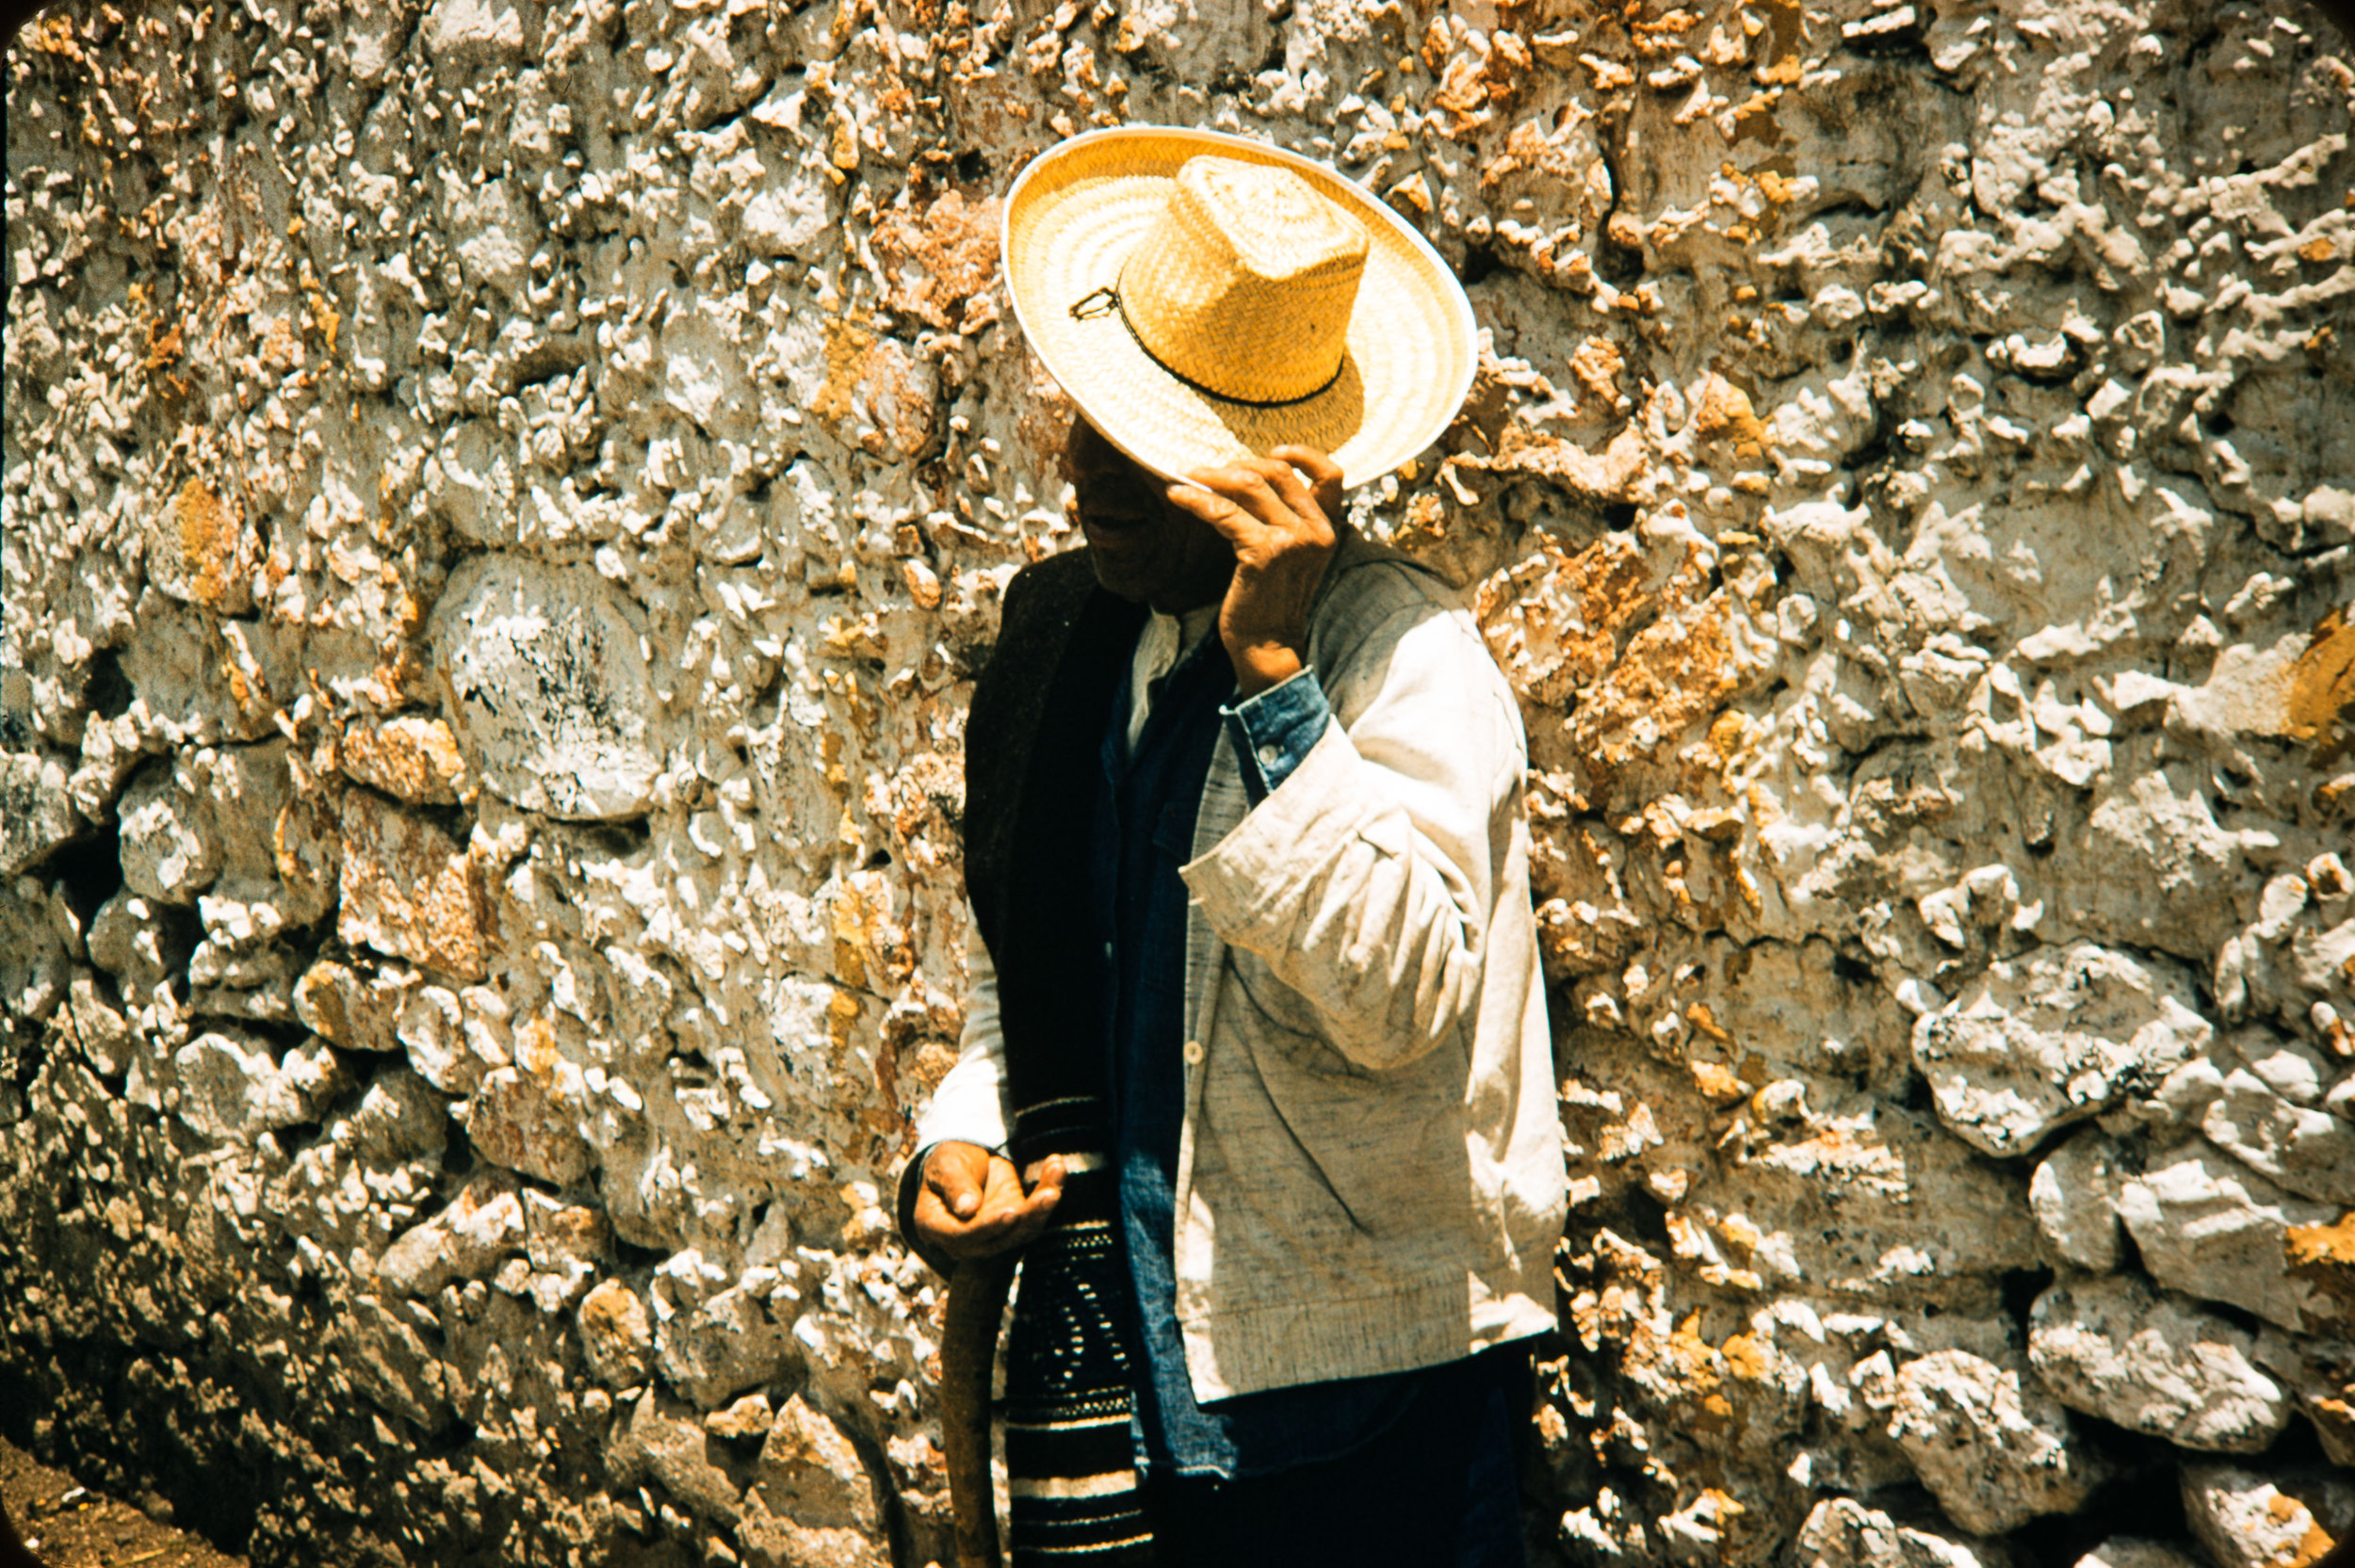 Man with hat over face, Mexico, 1957